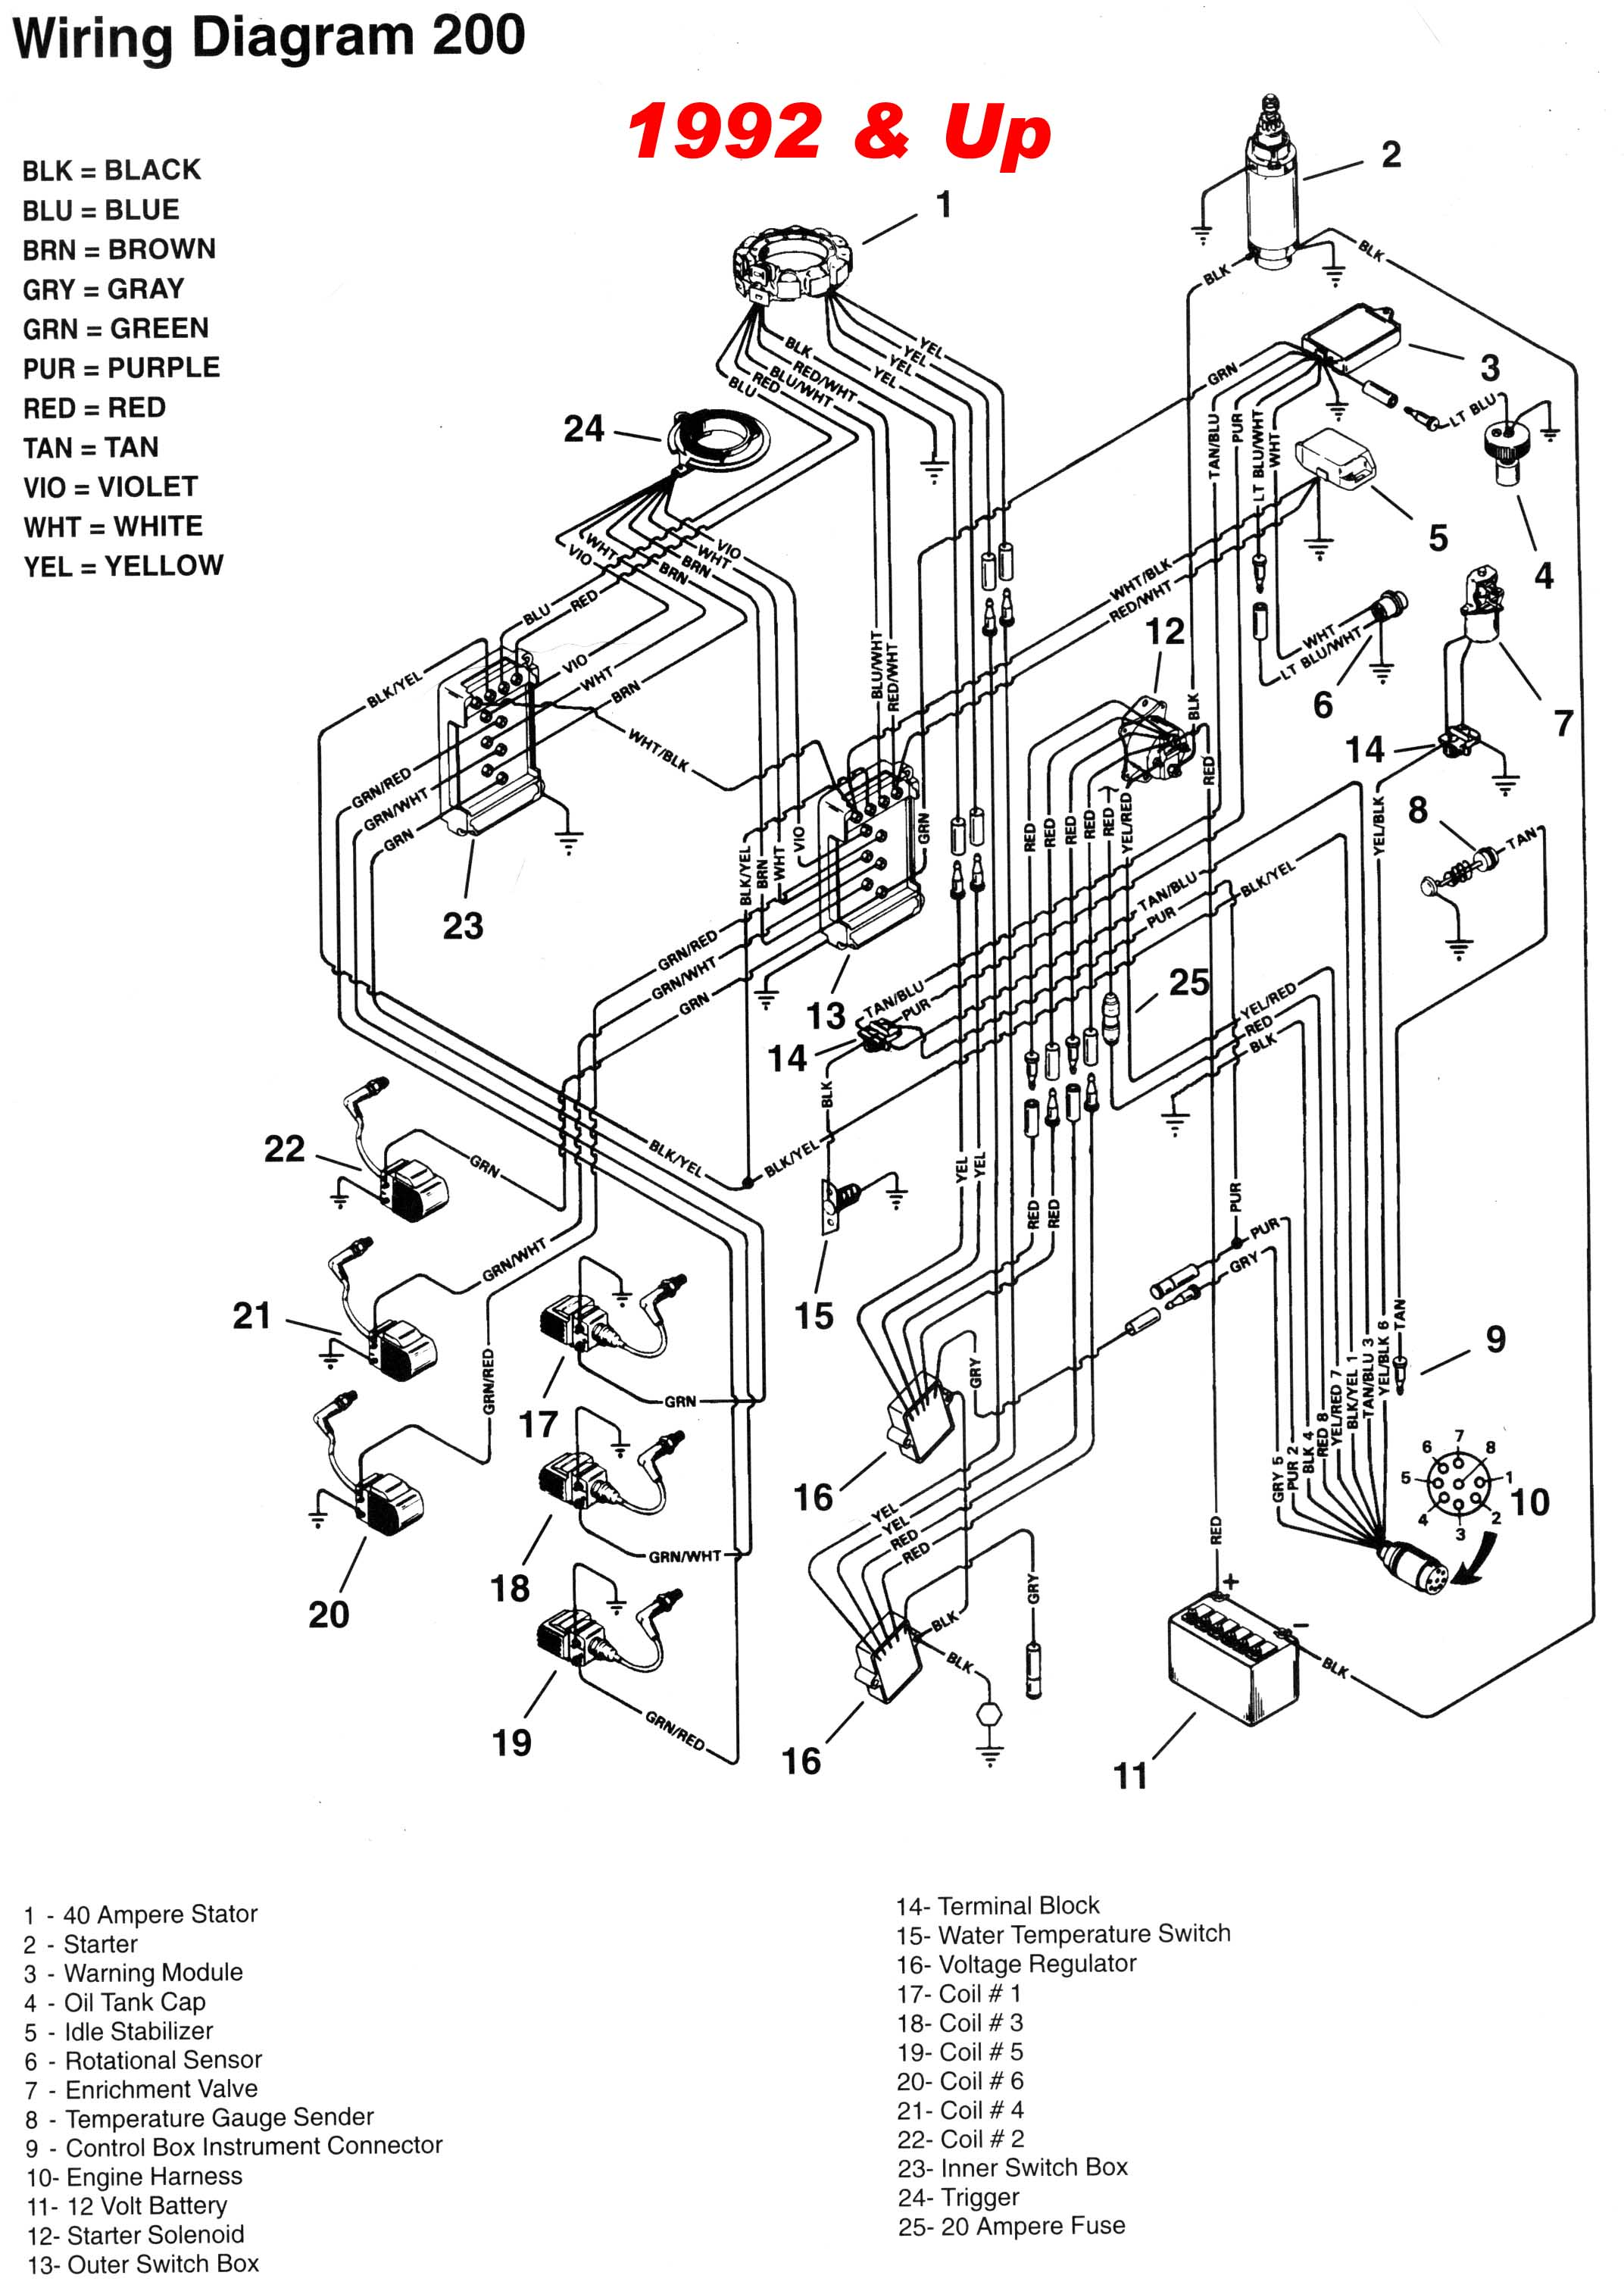 mercury_92up_200_wiring mercury outboard 2 5 and 3 0l v6 and gearcase faq 1987 90 hp mercury outboard wiring diagram at readyjetset.co